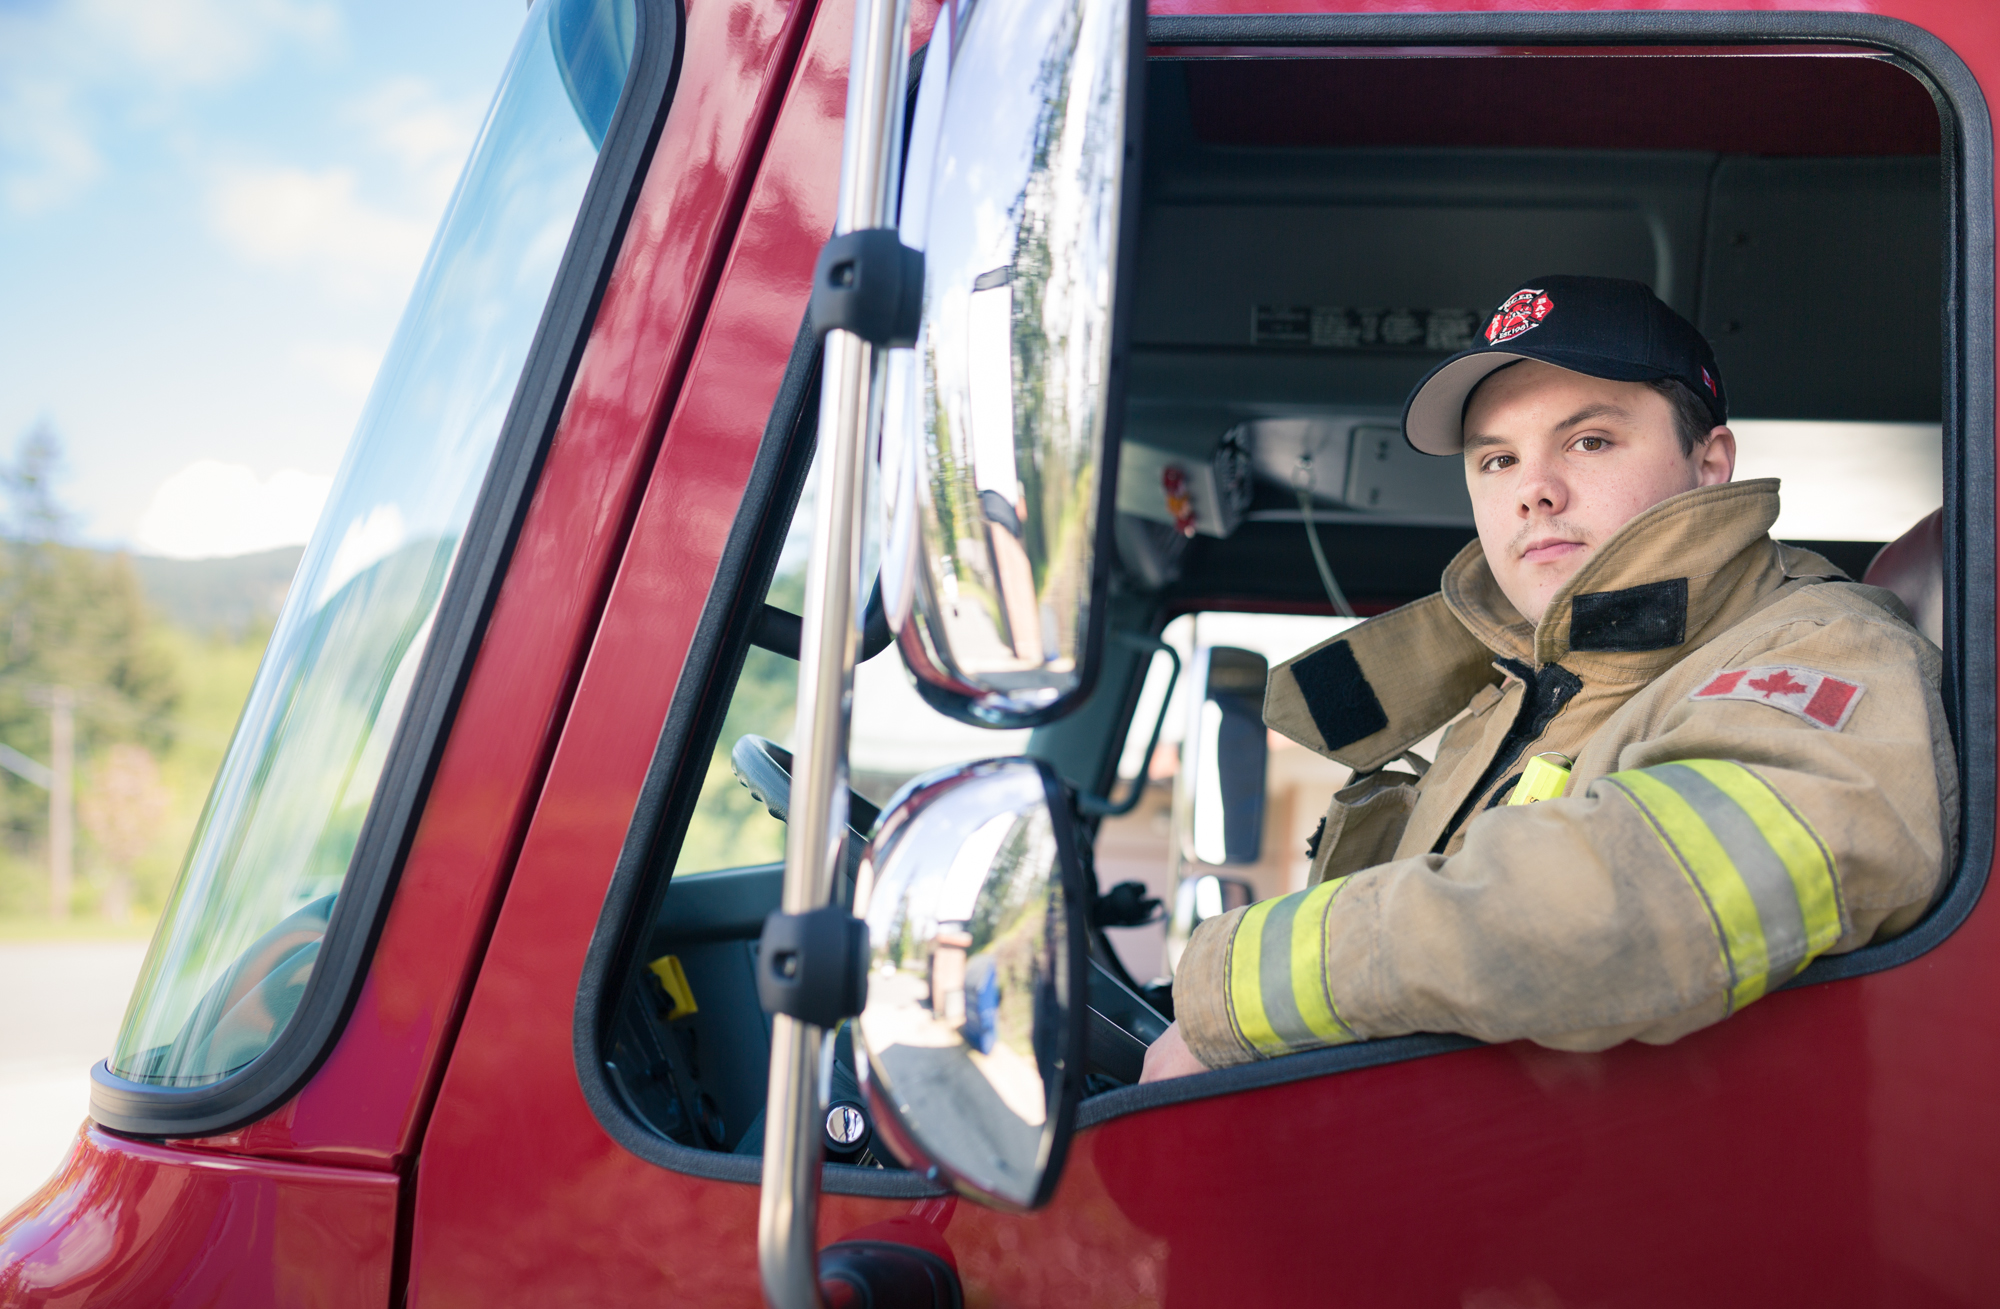 Conor, North Cowichan Firefighter